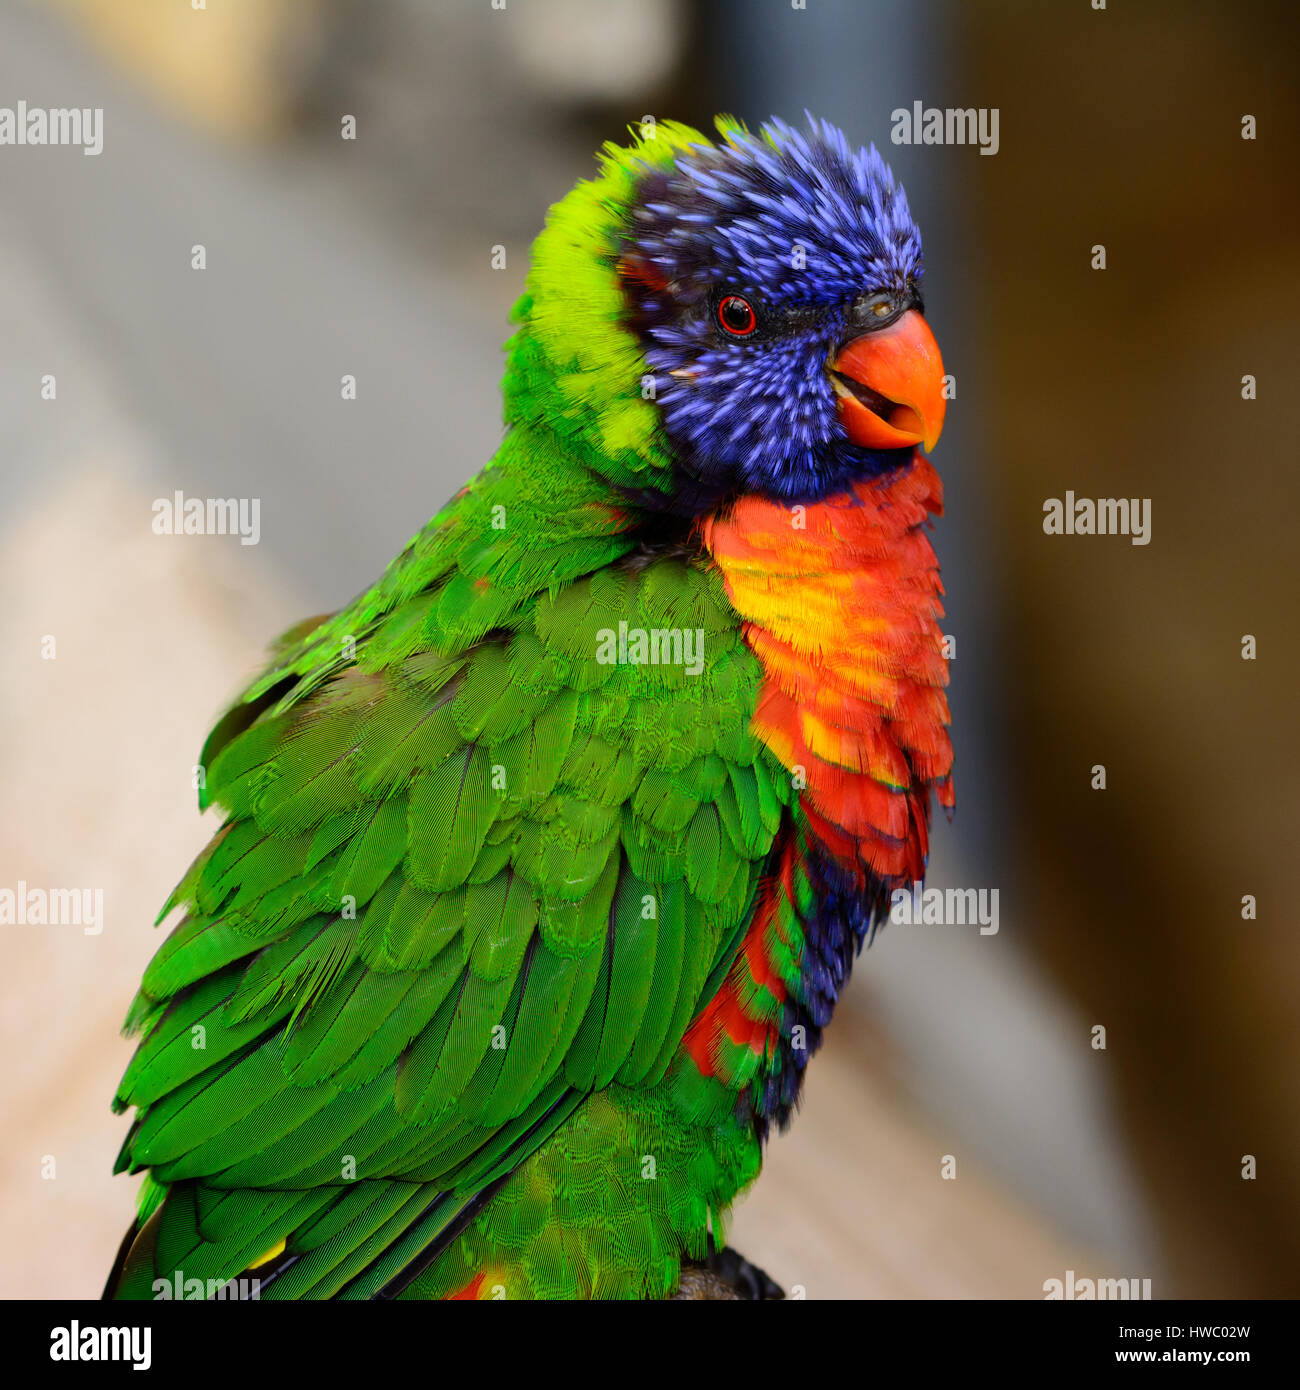 Rainbow lori (Trichoglossus moluccanus) with vivd eyes and plummage. Also called a lorikeet - Stock Image